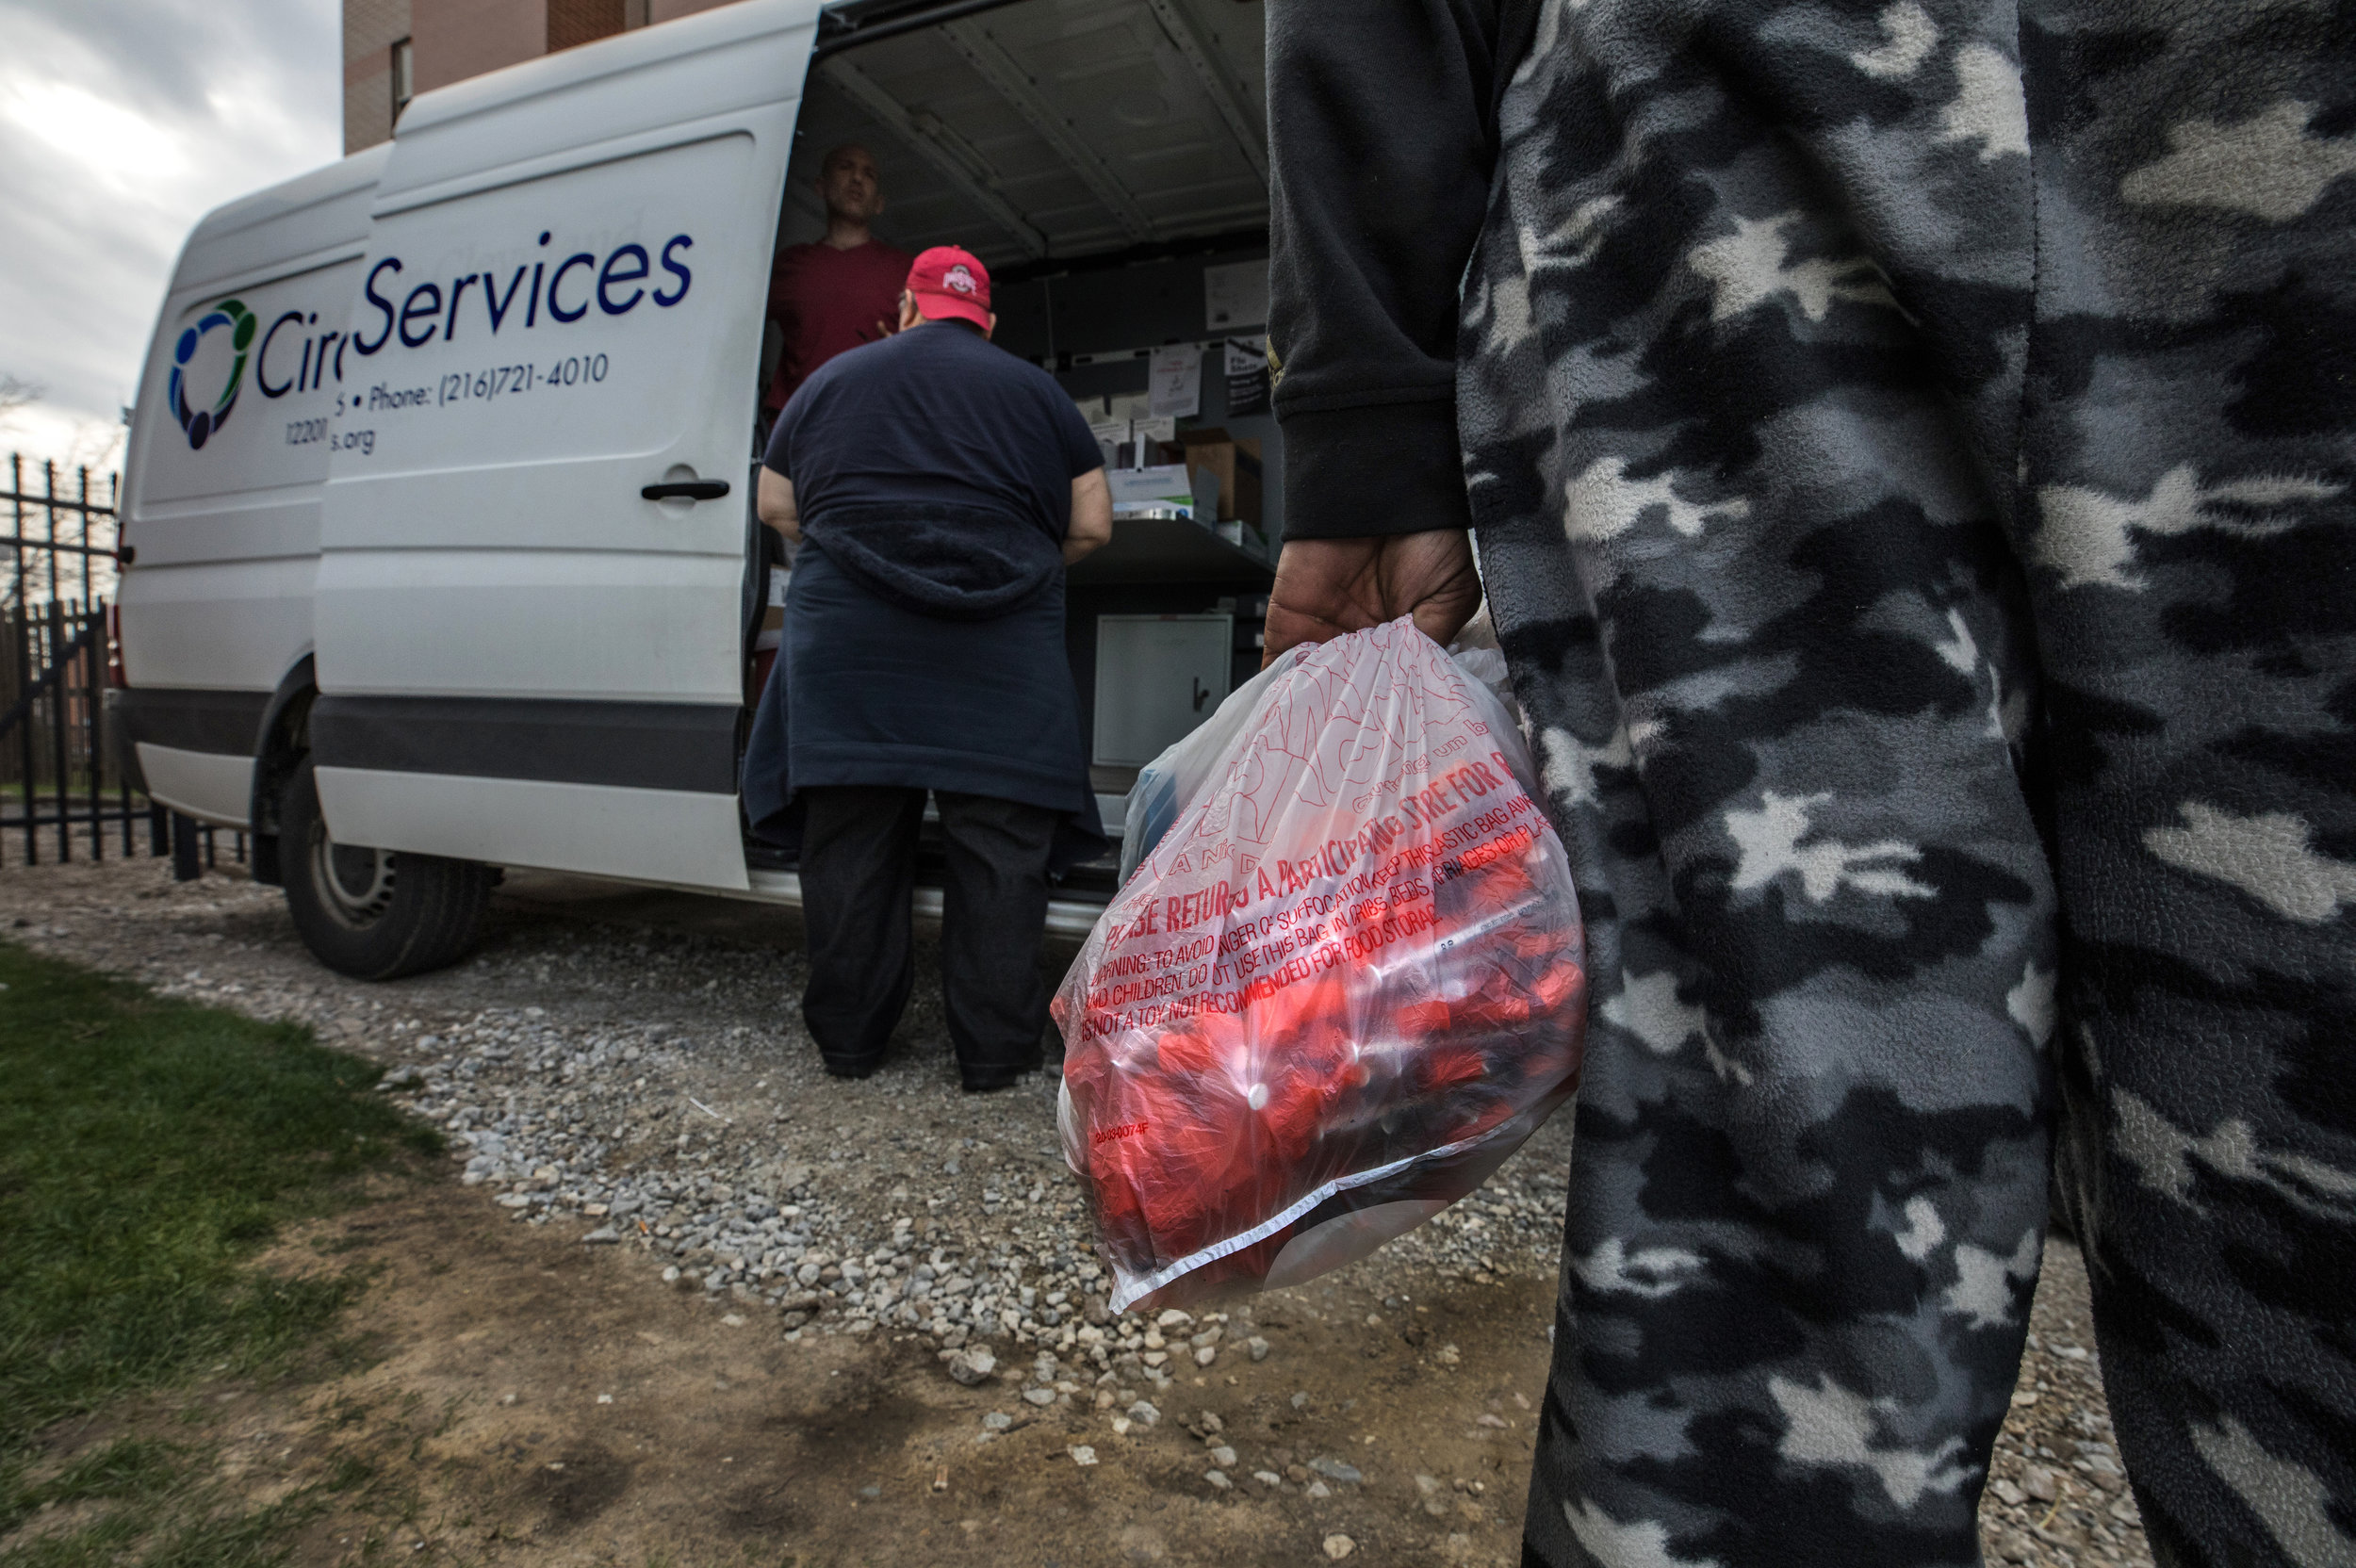 A client waits to exchange used hundreds of used syringes for clean ones at the Circle Heath Services Syringe Exchange van.